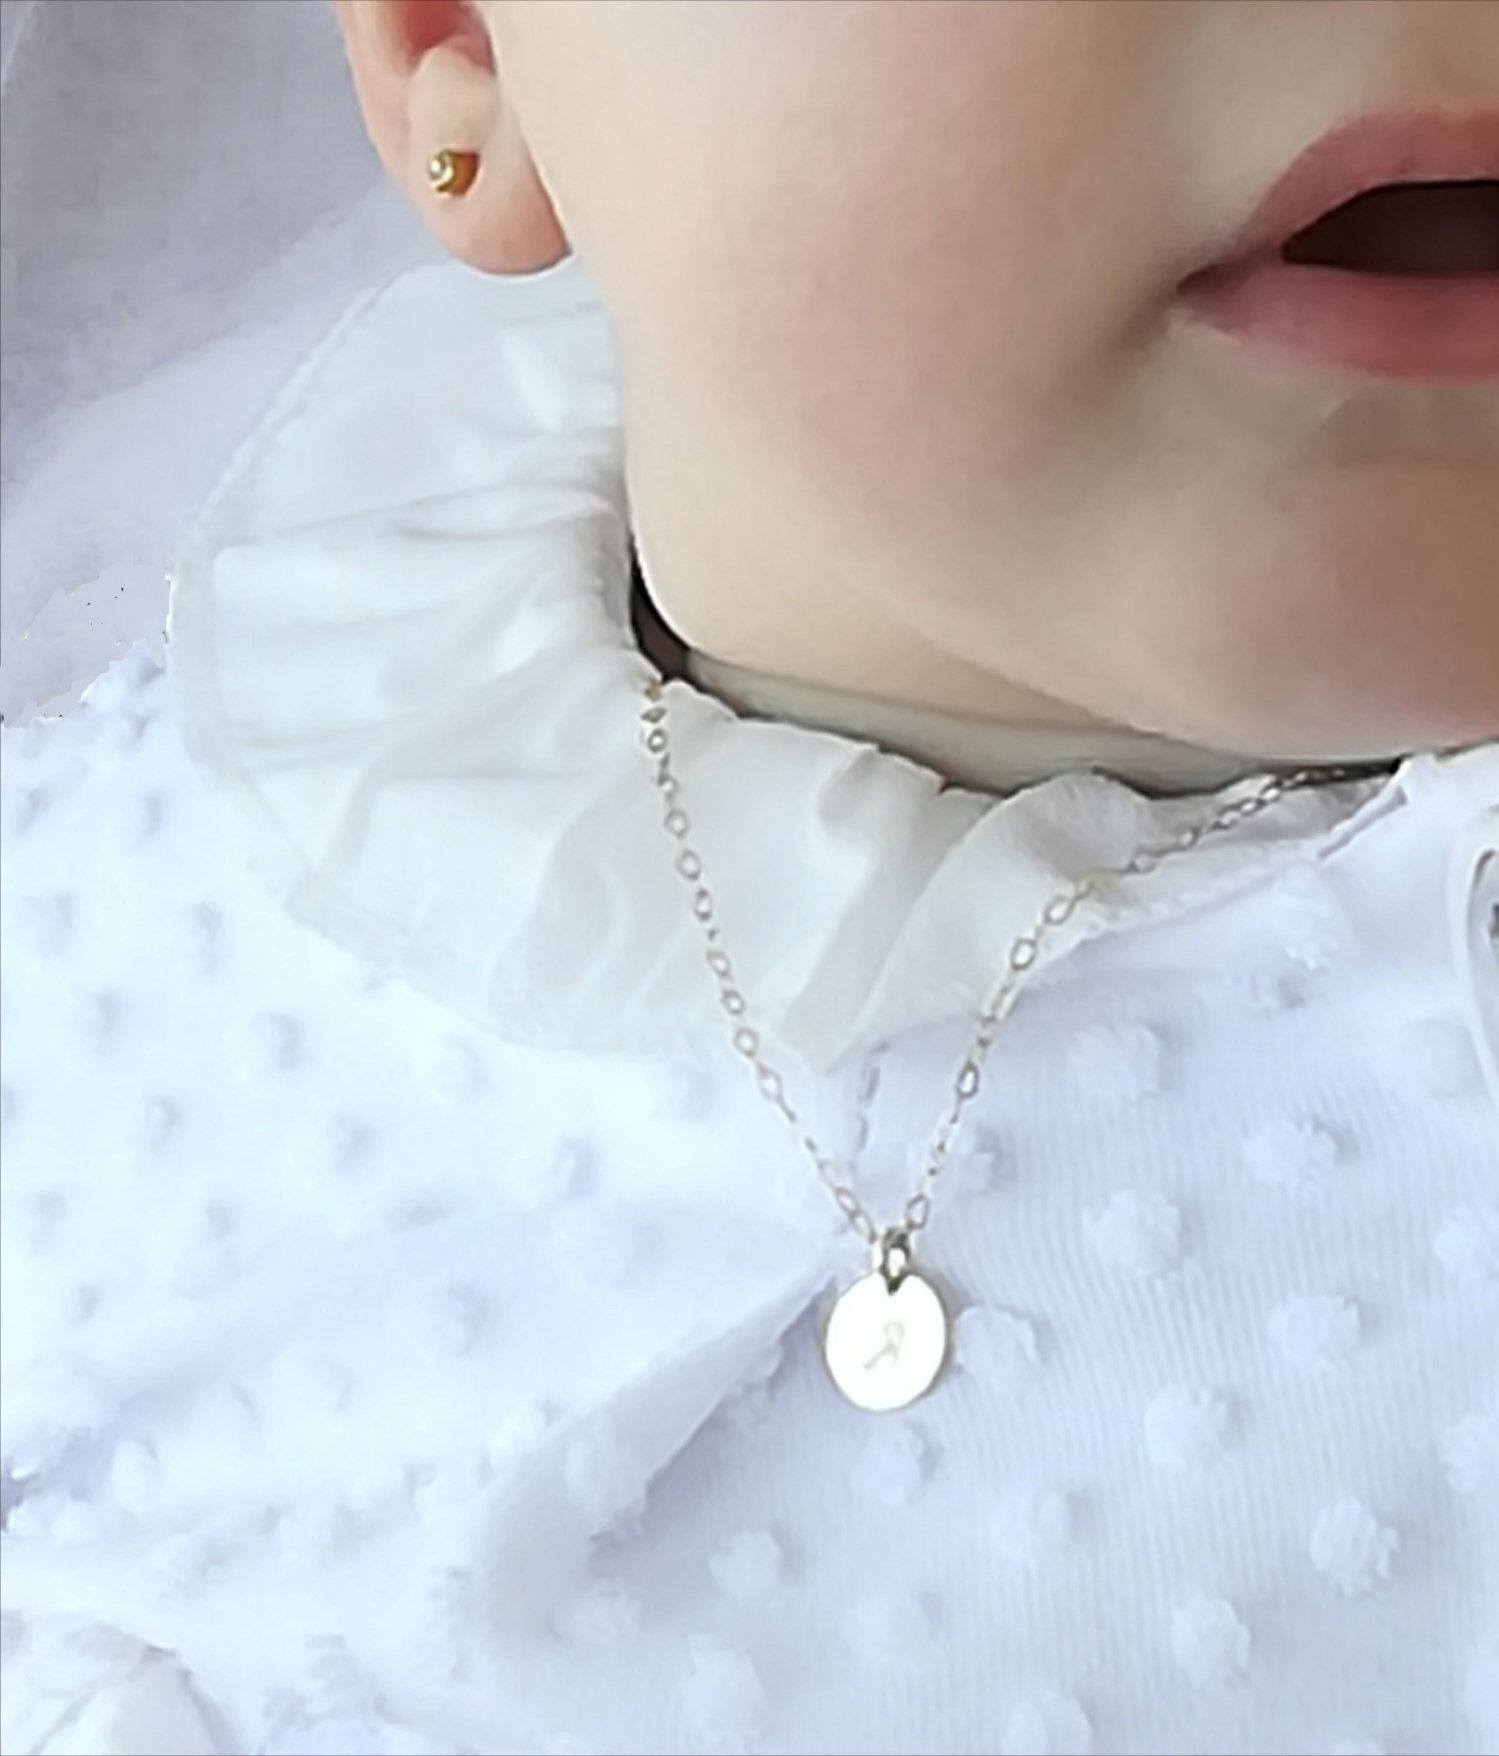 Communion Gift Children or Baby Jewellery Gift for Newborn Religious Jewellery Baptism Gift Delicate Cross 14k Gold Filled Necklace